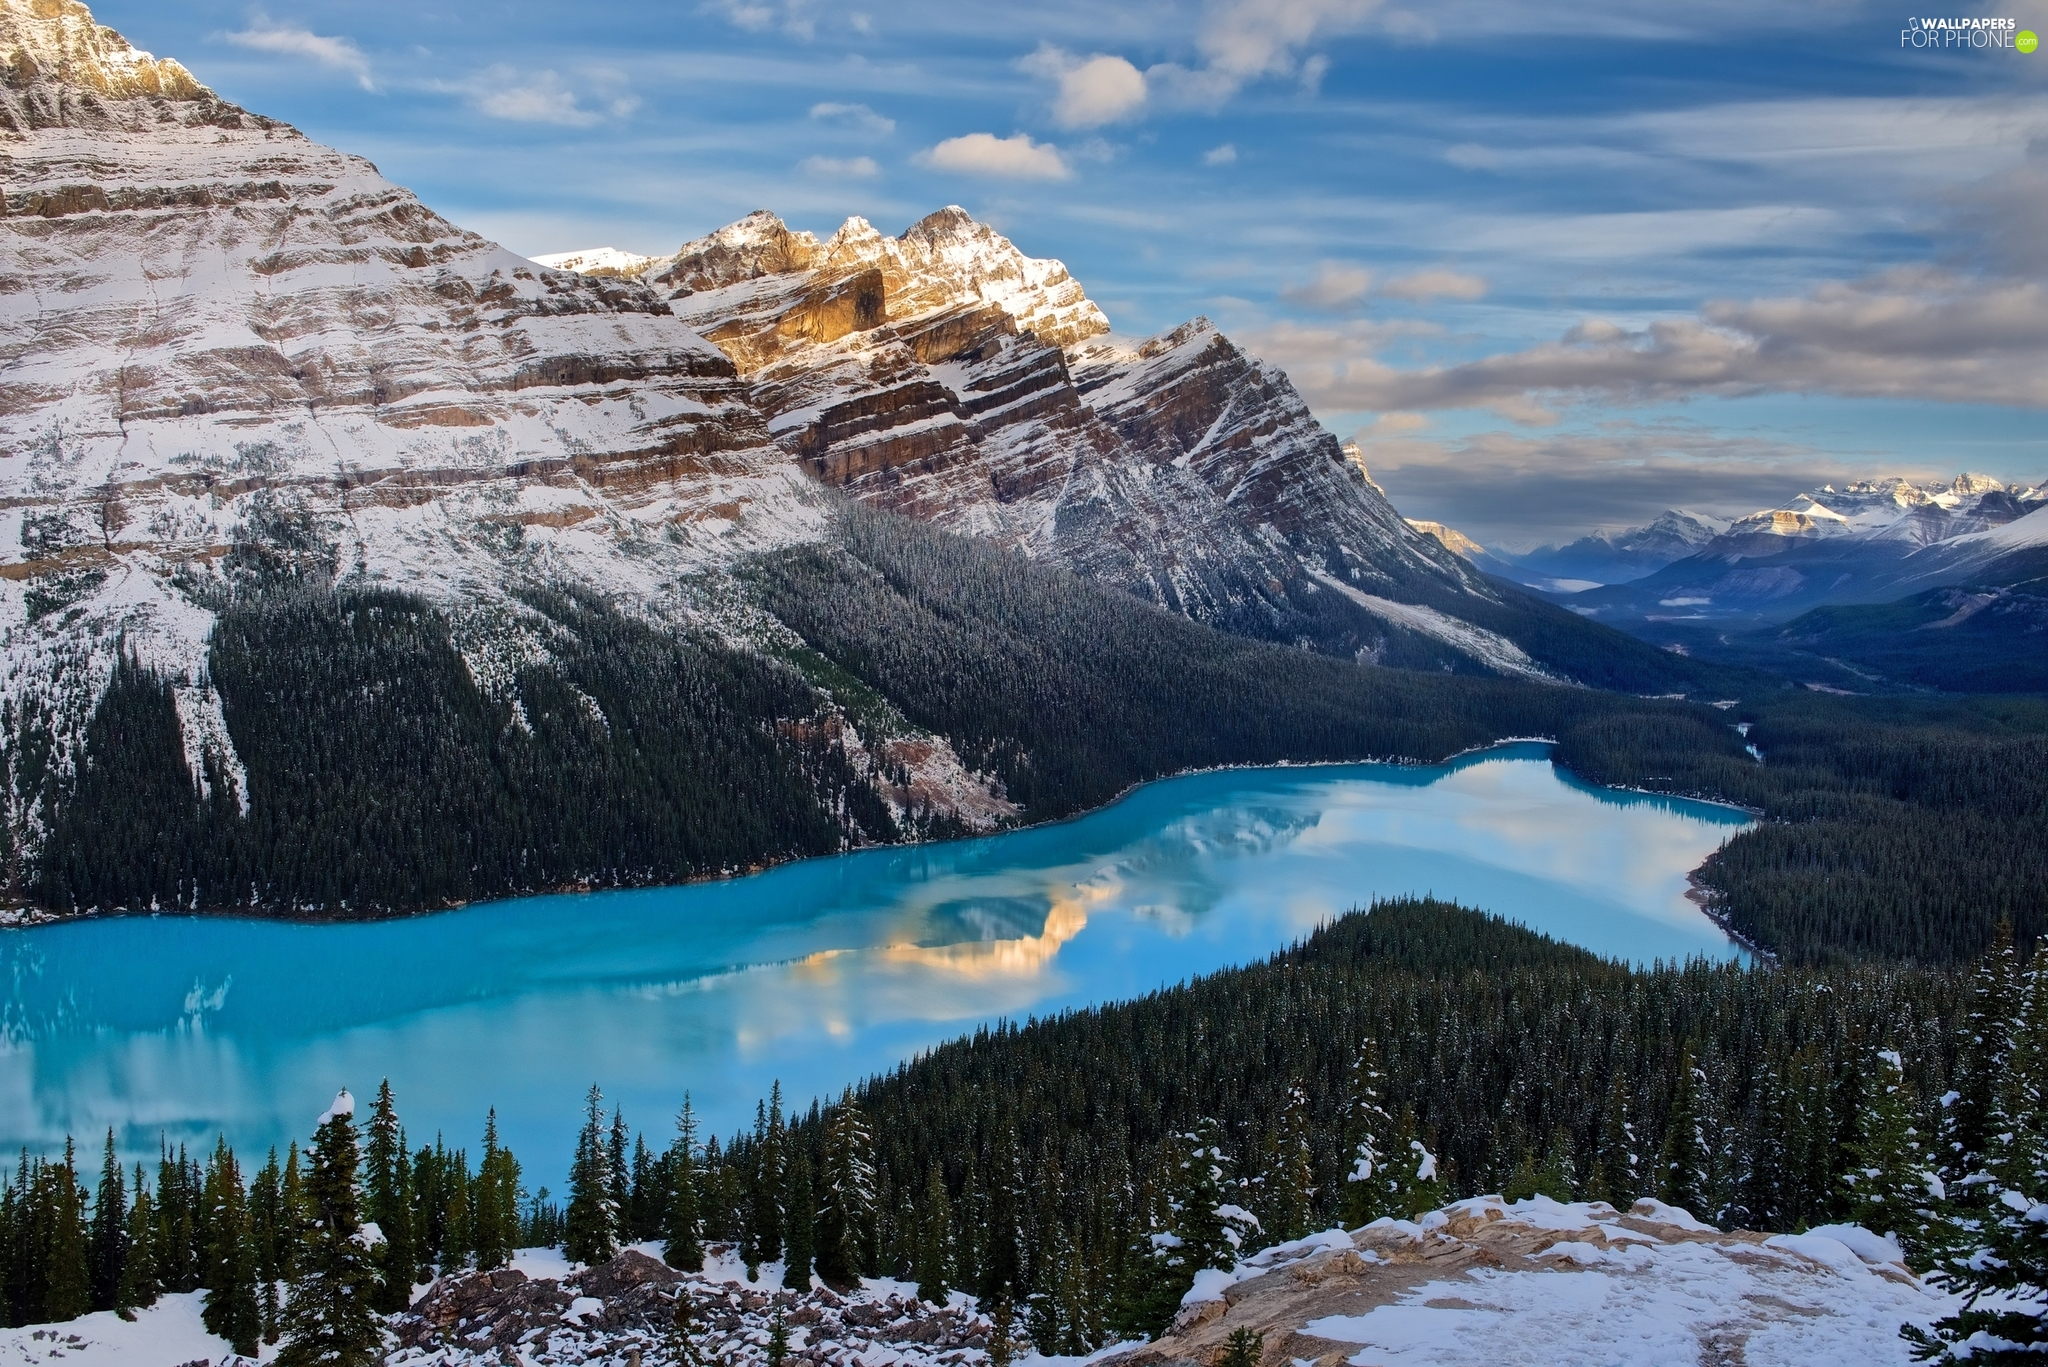 Mountains Canadian Rockies, Canada, woods, winter, Peyto Lake, Banff National Park